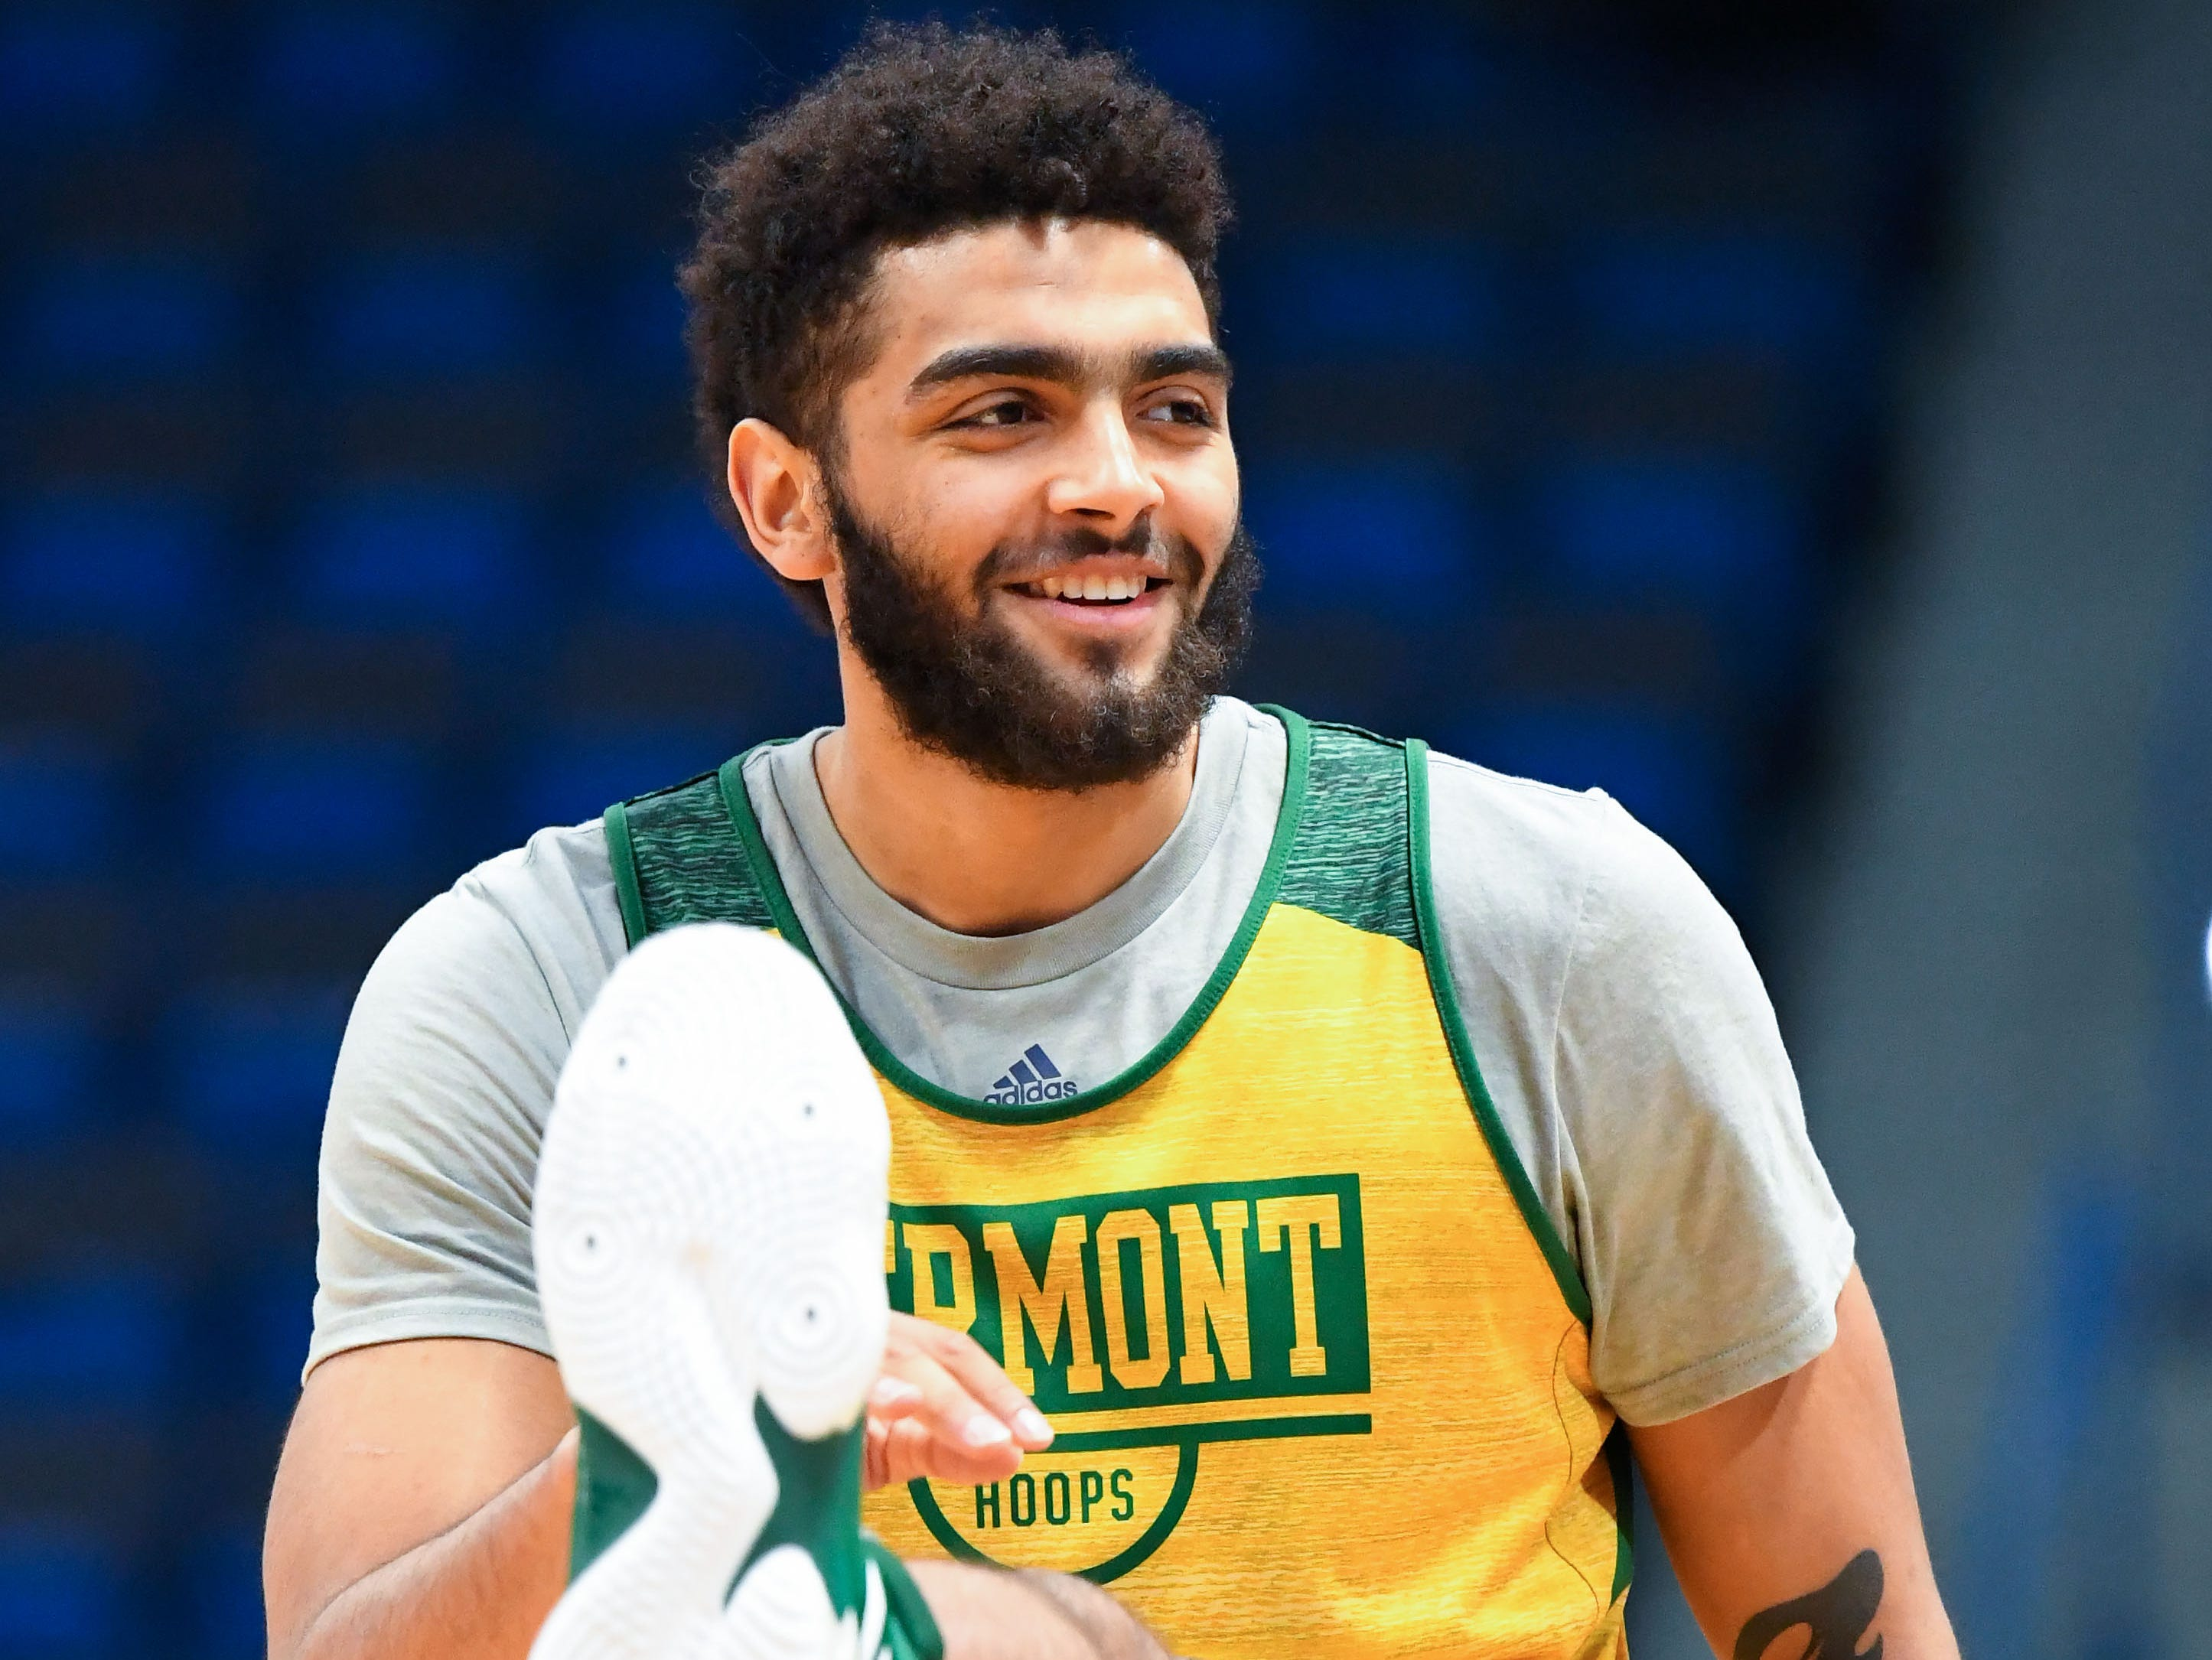 Mar 20, 2019; Hartford, CT, USA; Vermont Catamounts forward Anthony Lamb (3) stretches during practice before the first round of the 2019 NCAA Tournament at XL Center. Mandatory Credit: Robert Deutsch-USA TODAY Sports